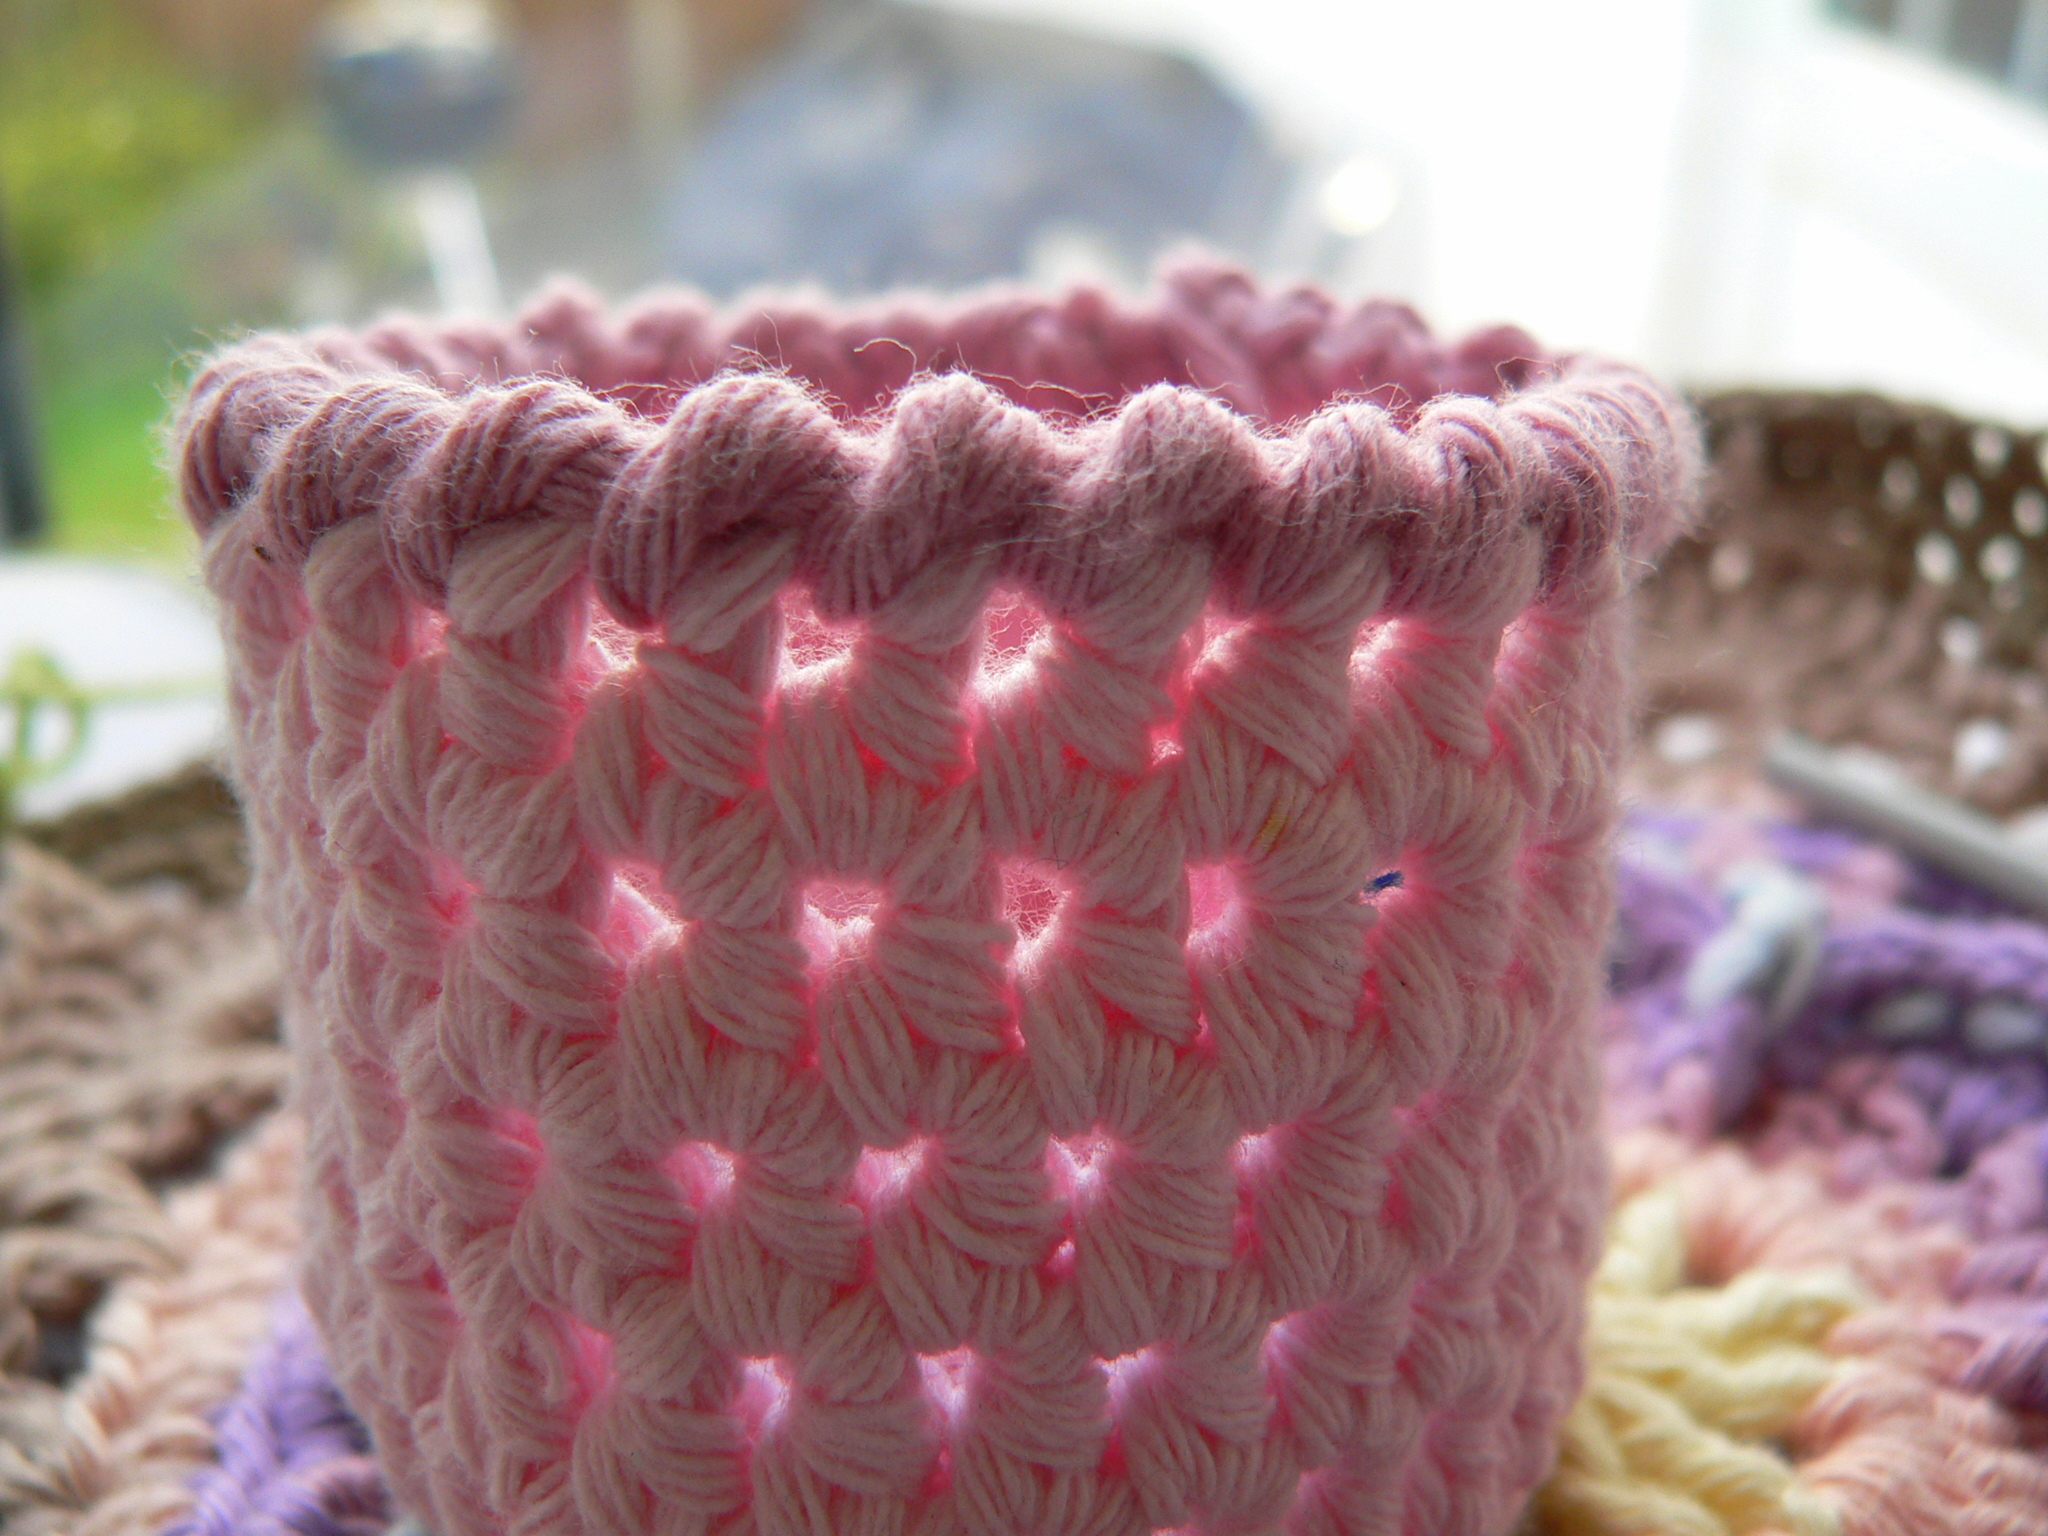 Pink Crochet Basket with a Crab Stitch Edge